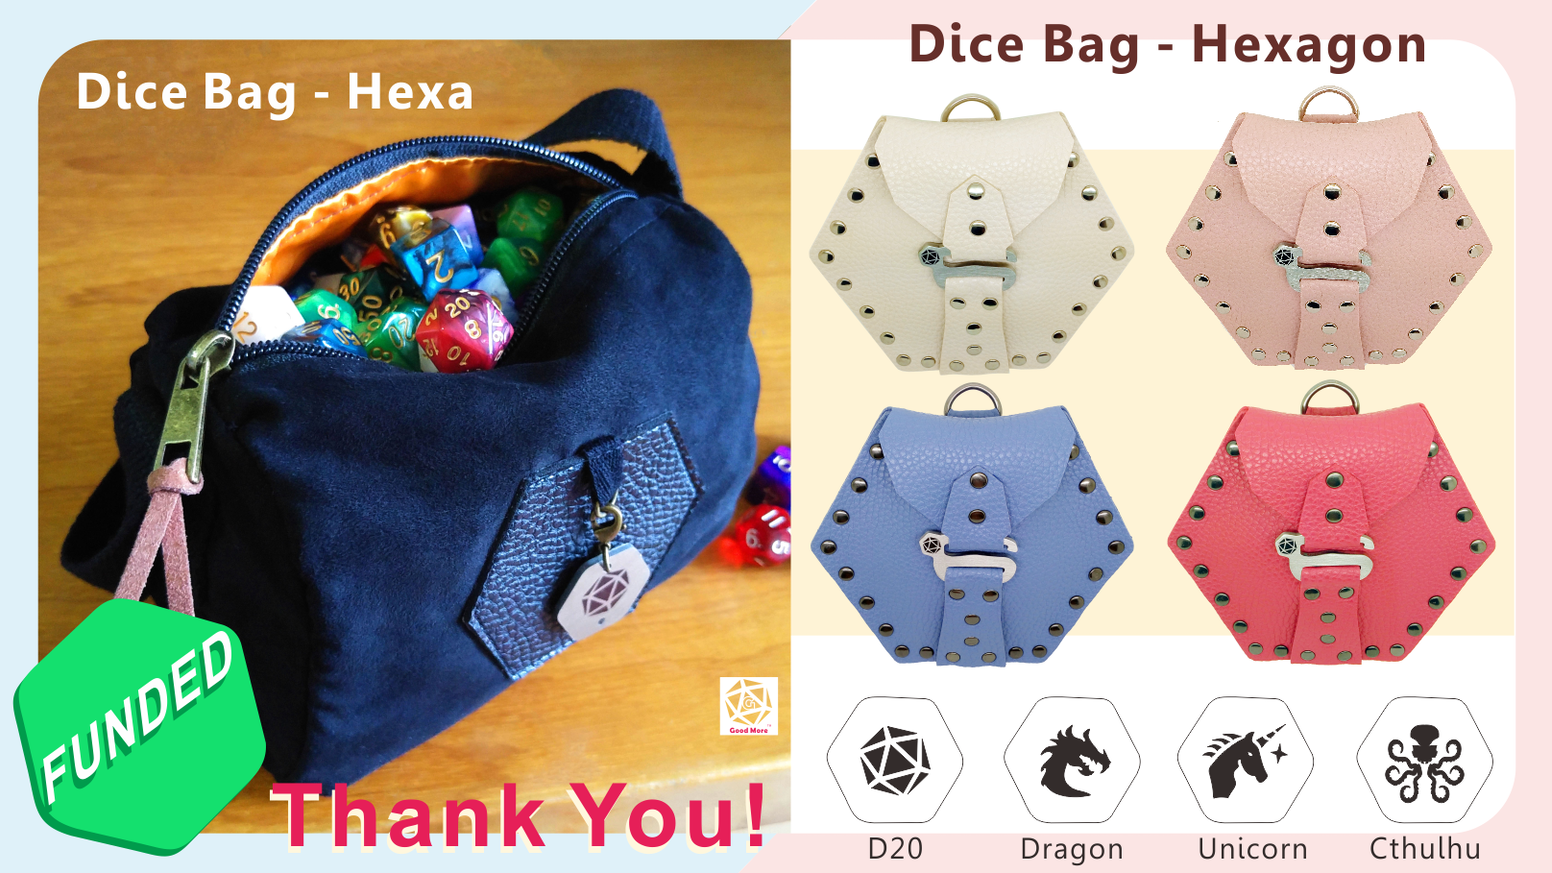 Dice Bag - Hexagon